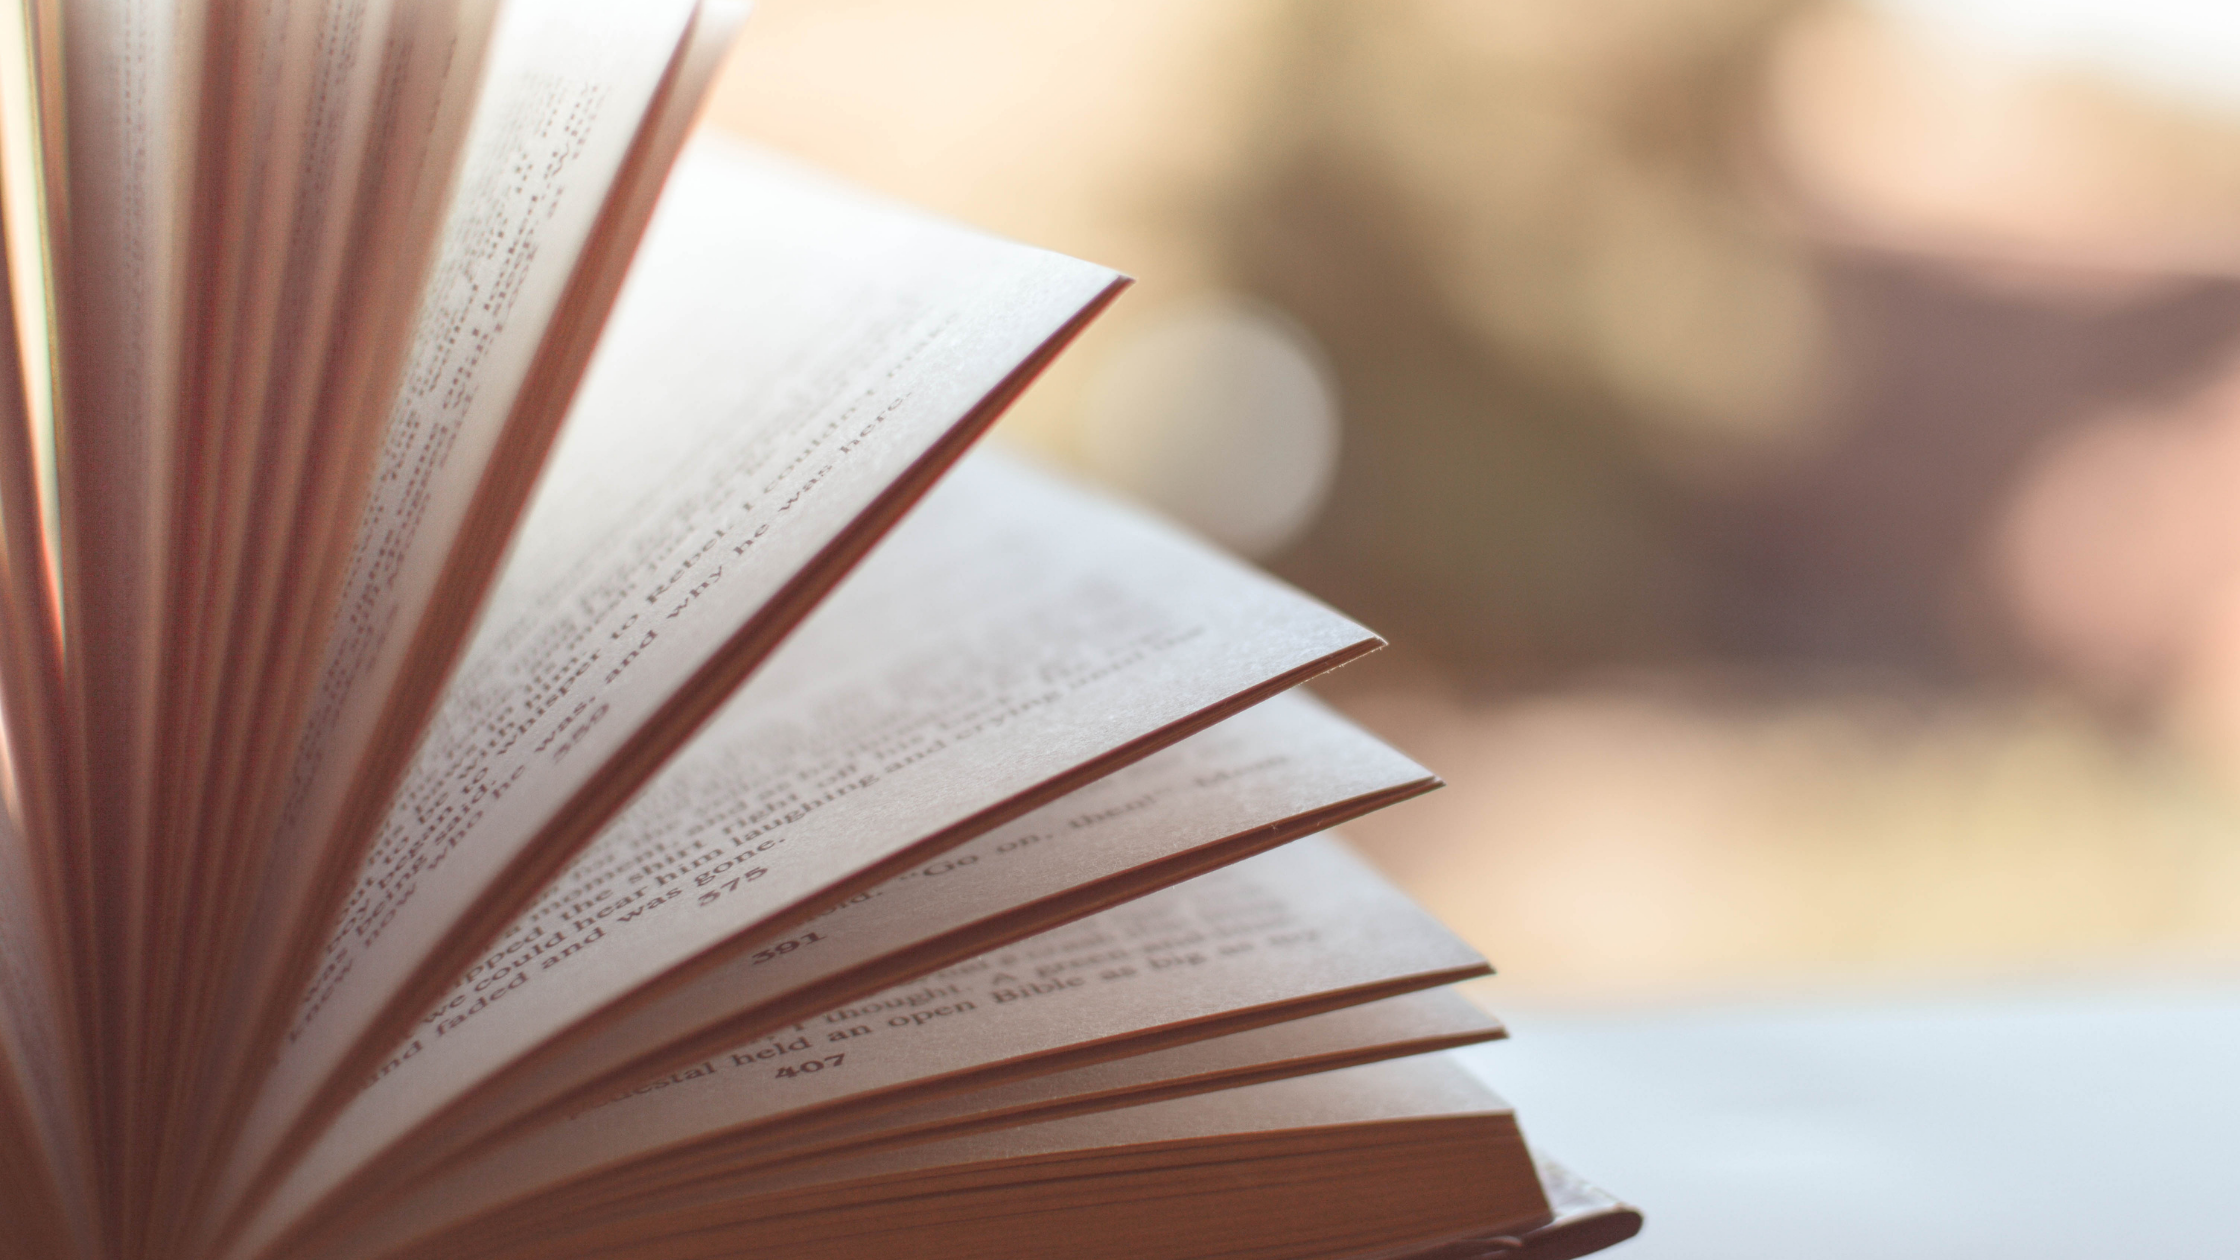 5 Books To Help Cope with Post-Pandemic Anxiety